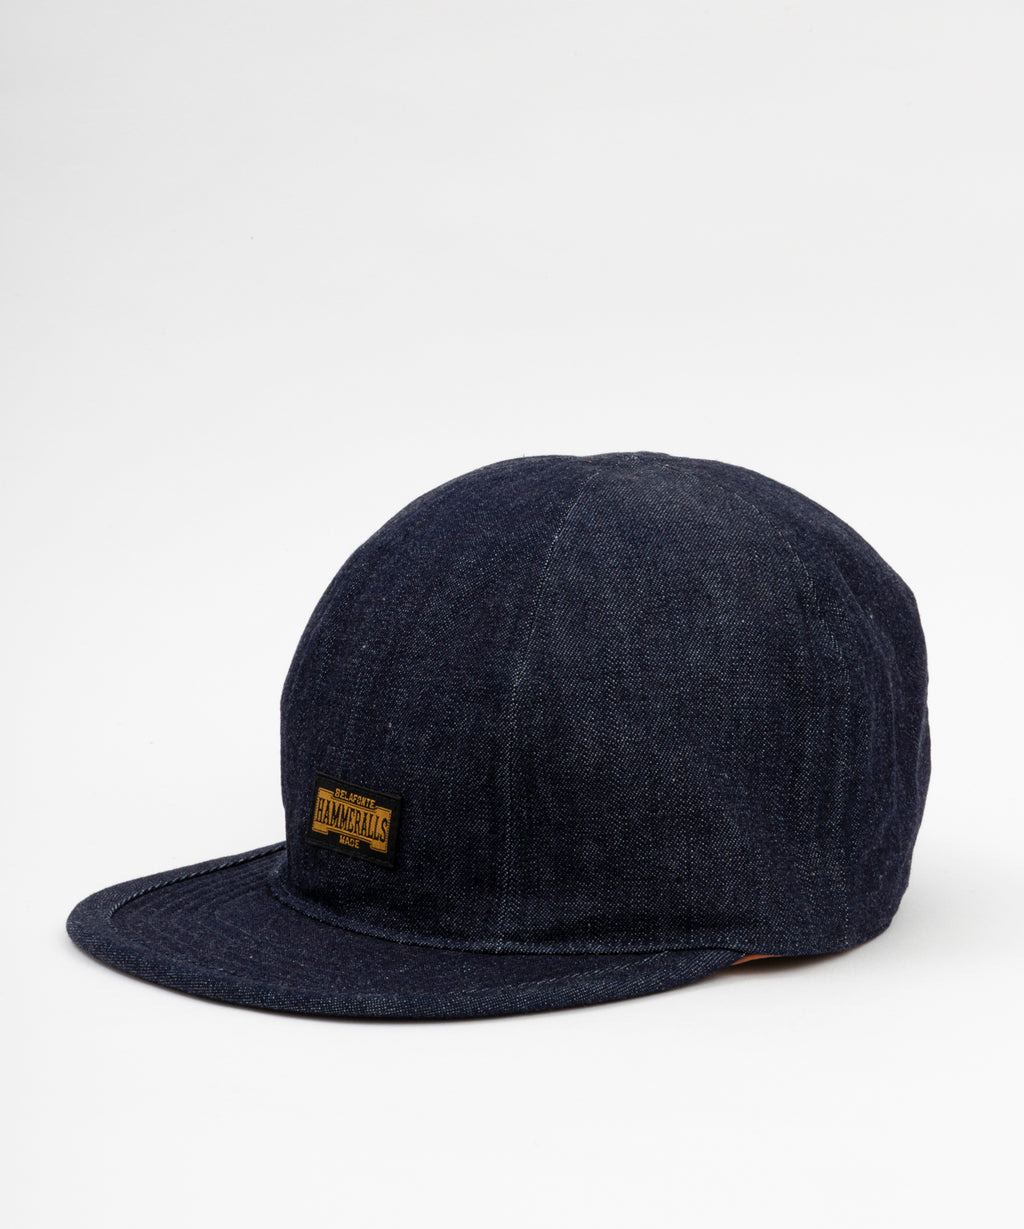 Ragtime Chopper Cap - Denim